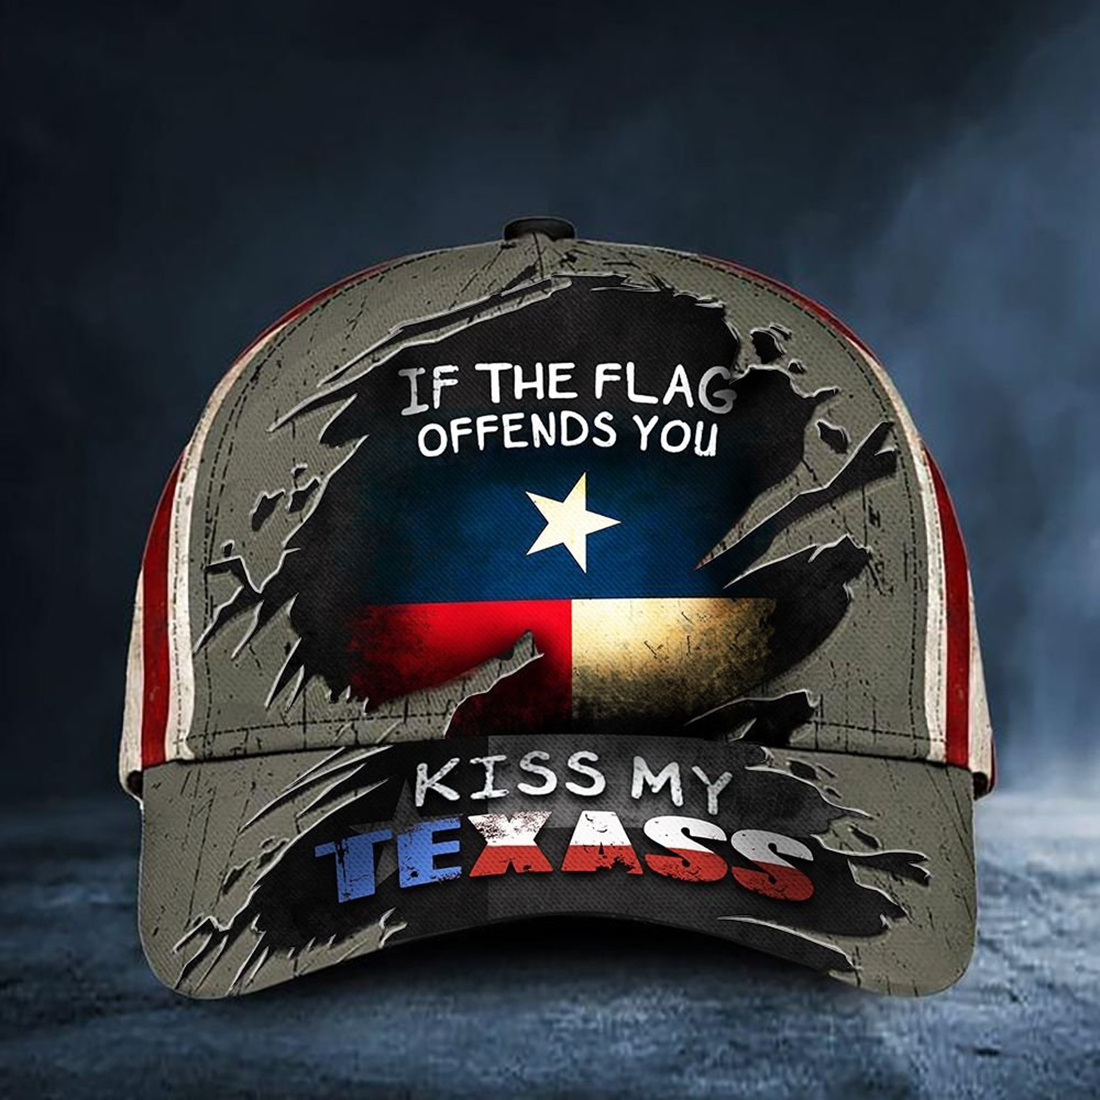 If the flag offends you kiss my texass classic cap hat